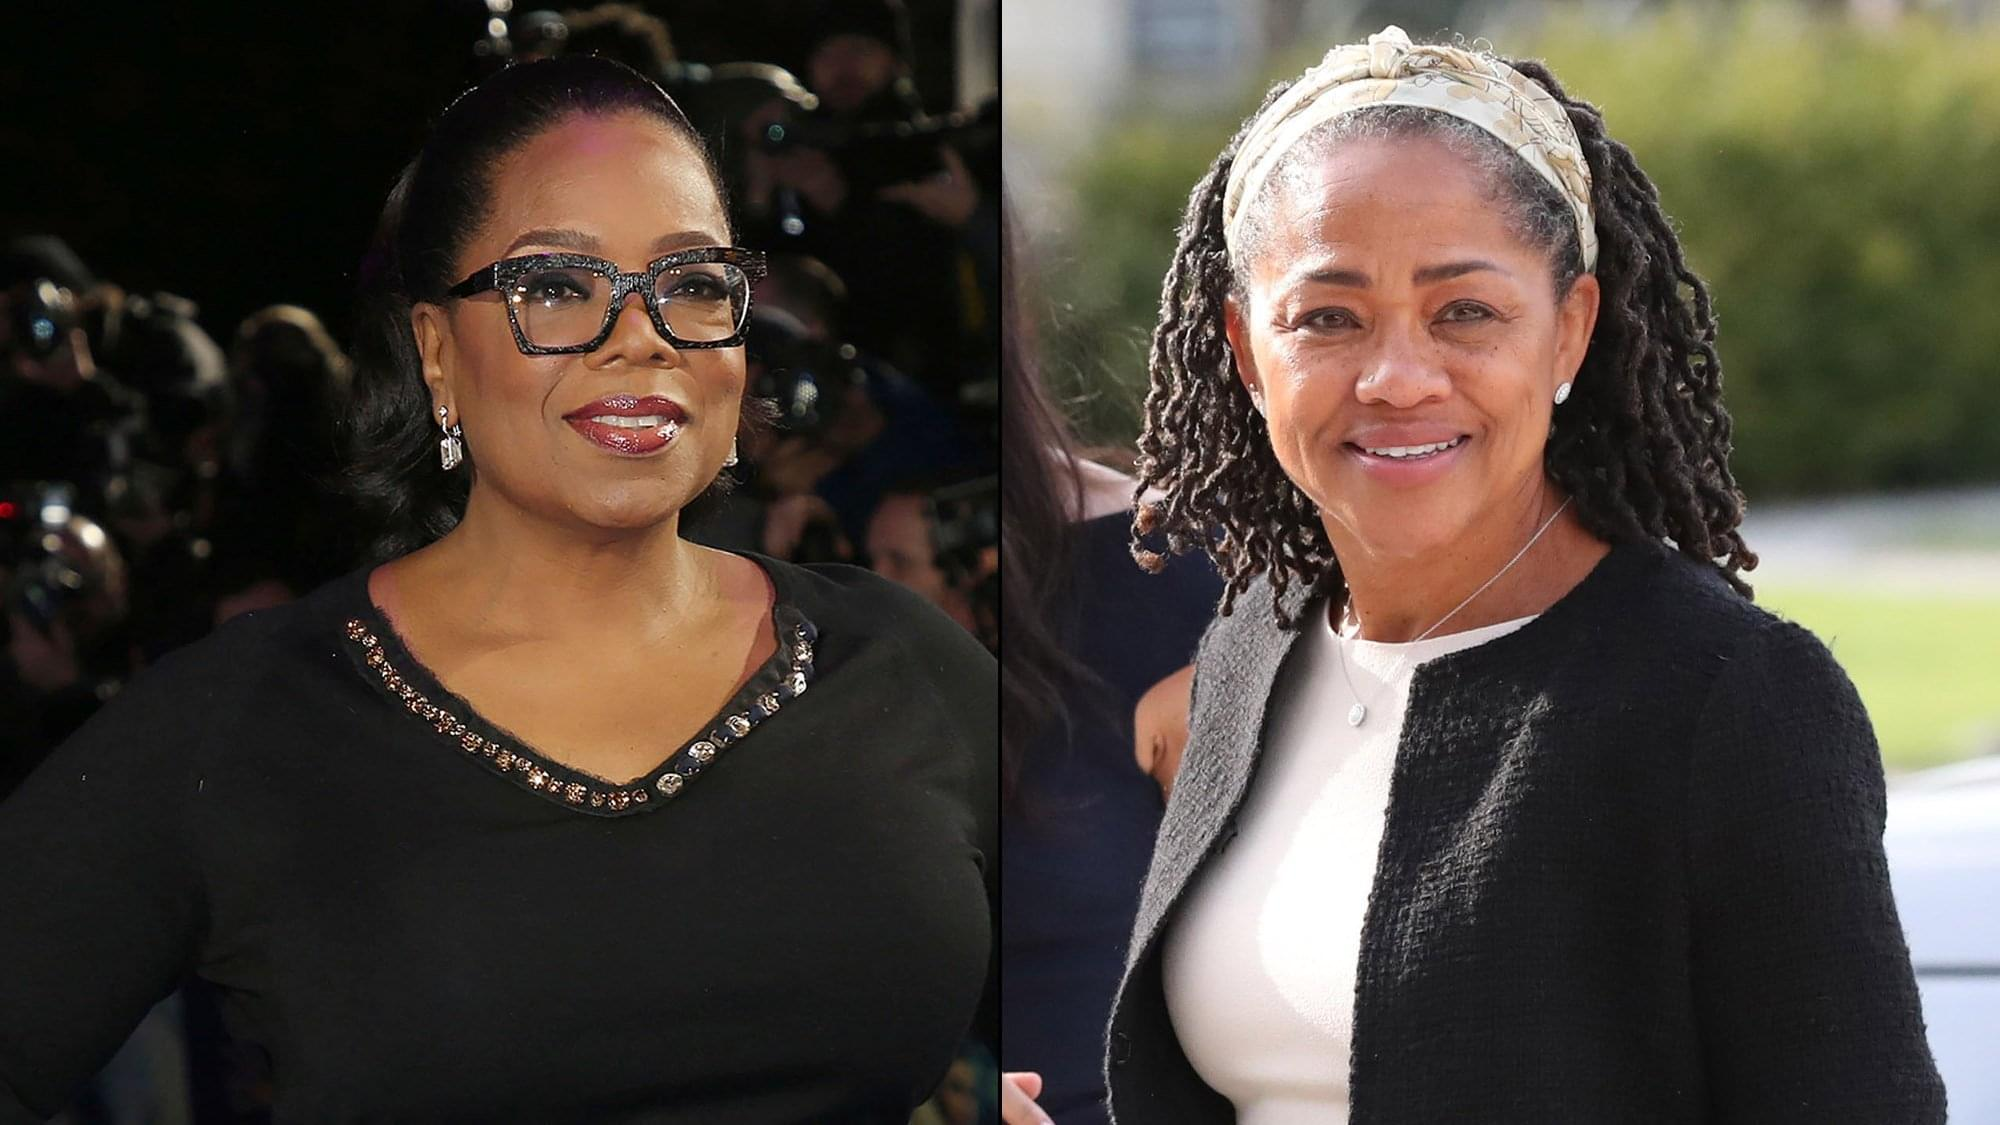 OPRAH'S GIFTS TO MEGHAN MARKLE'S MOM AFFIRM SHE'S THE QUEEN OF THOUGHTFUL